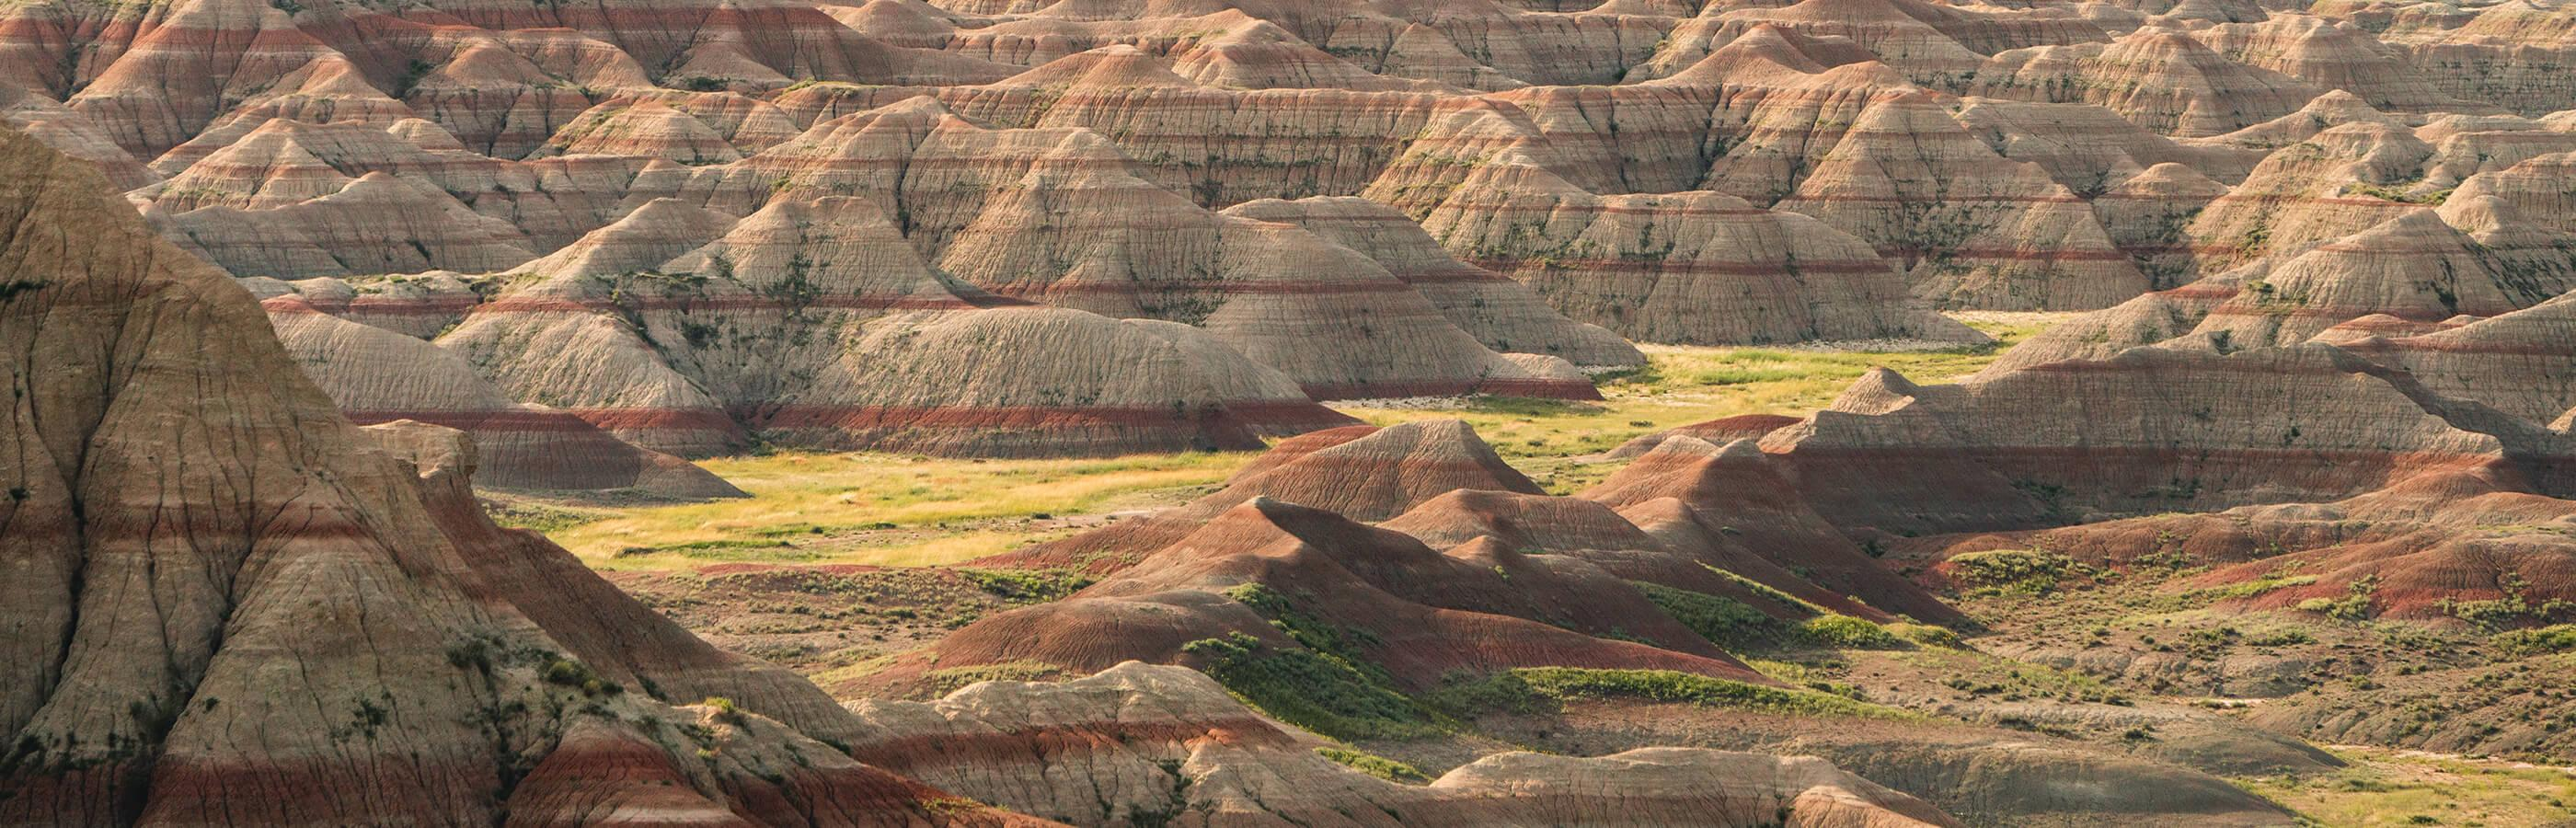 Badlands National Park Layers